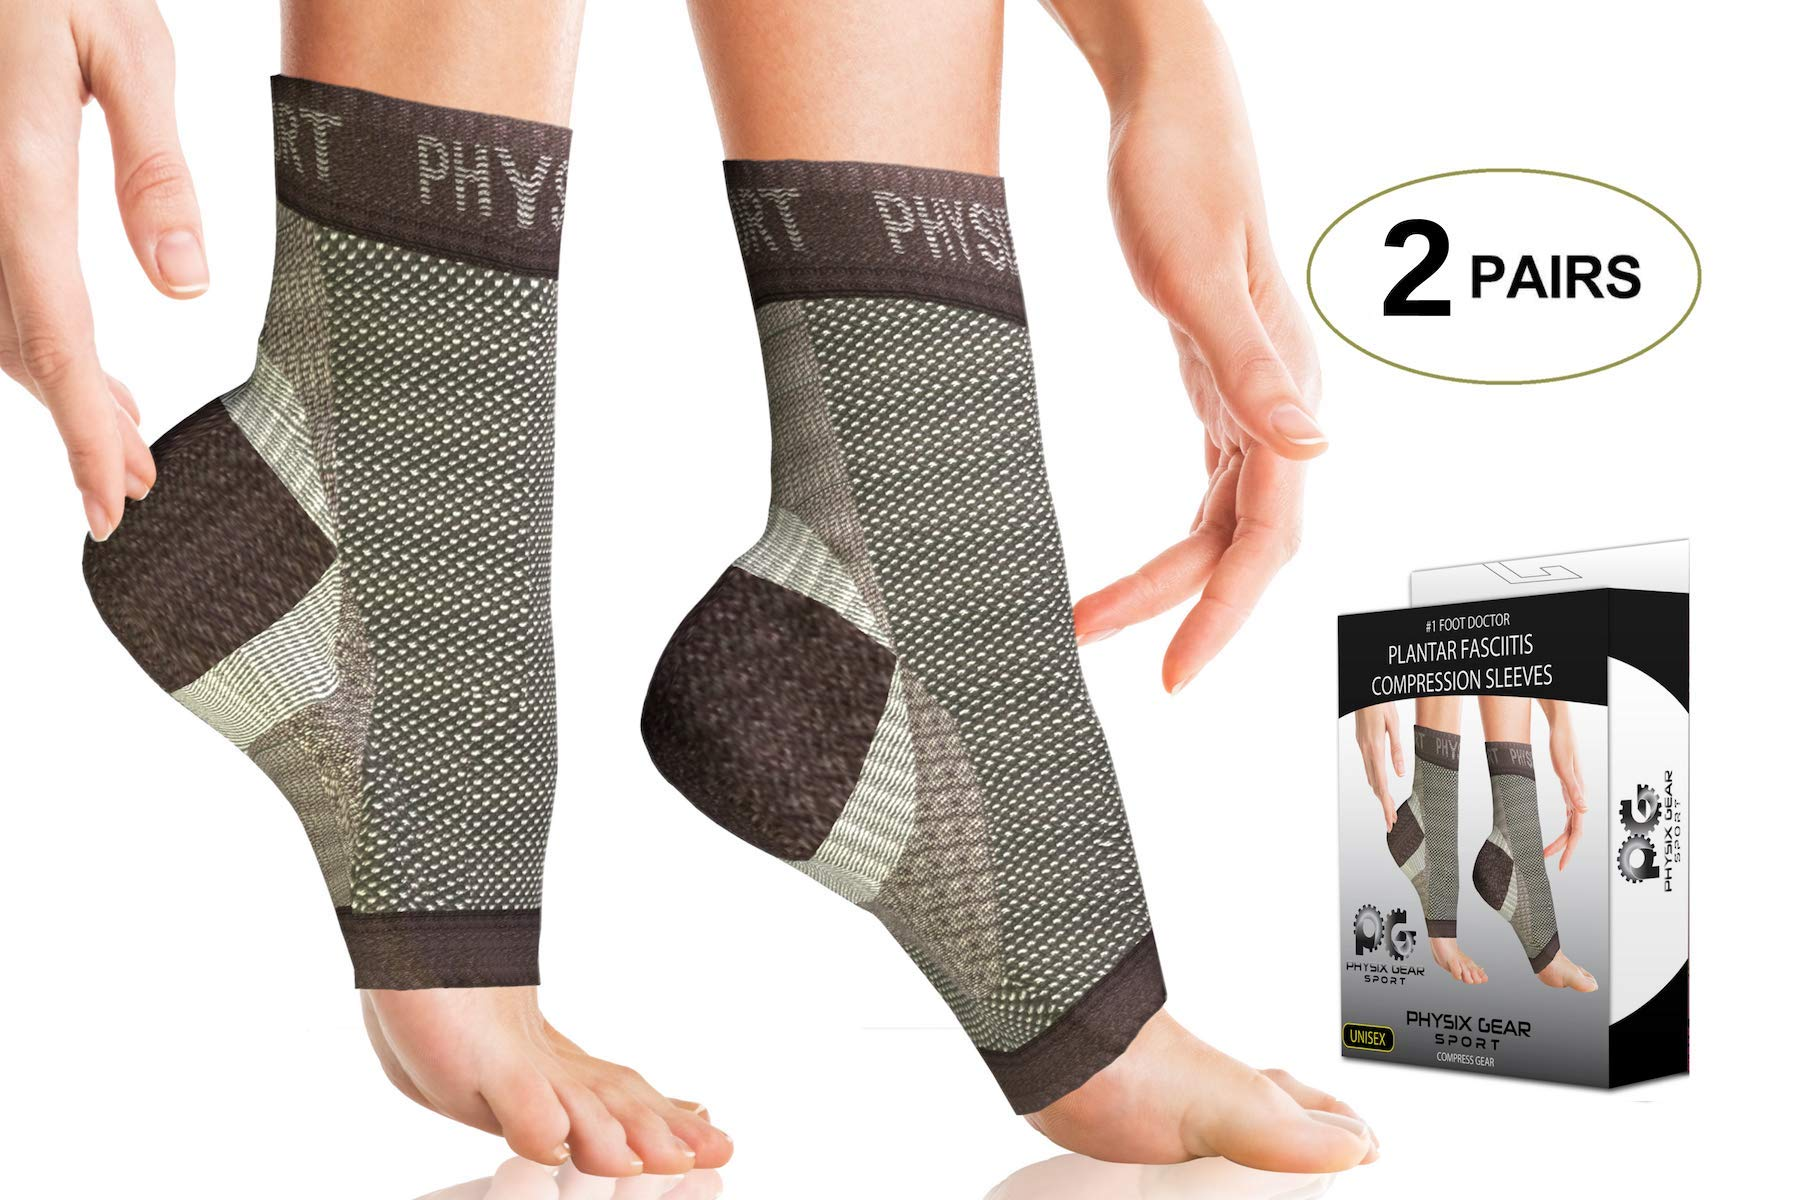 2 PAIRS Plantar Fasciitis Socks with Arch Support, BEST 24/7 Foot Care Compression Sleeve, Better than Night Splint, Eases Swelling & Heel Spurs, Ankle Circulation, Relieve Pain Fast - Black S/M